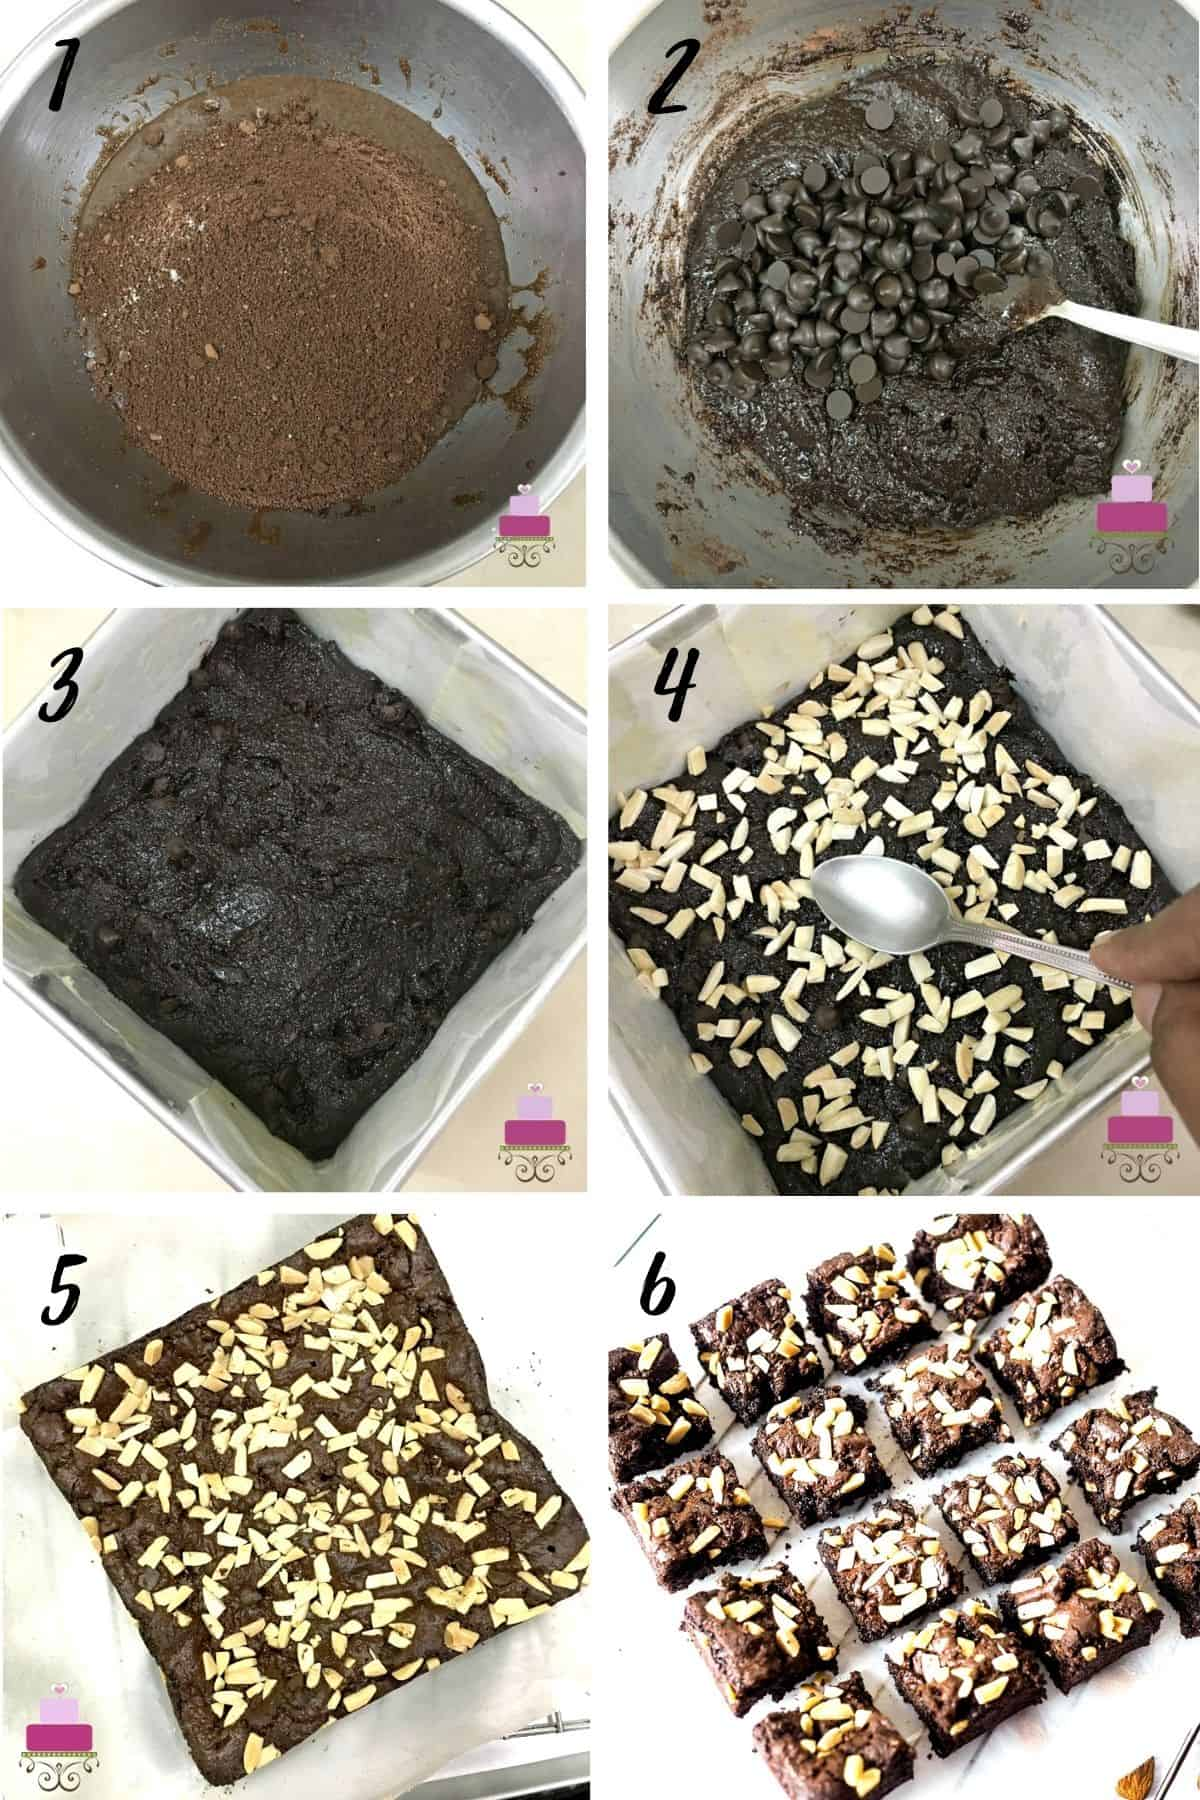 A poster of 6 images showing how to make almond brownies